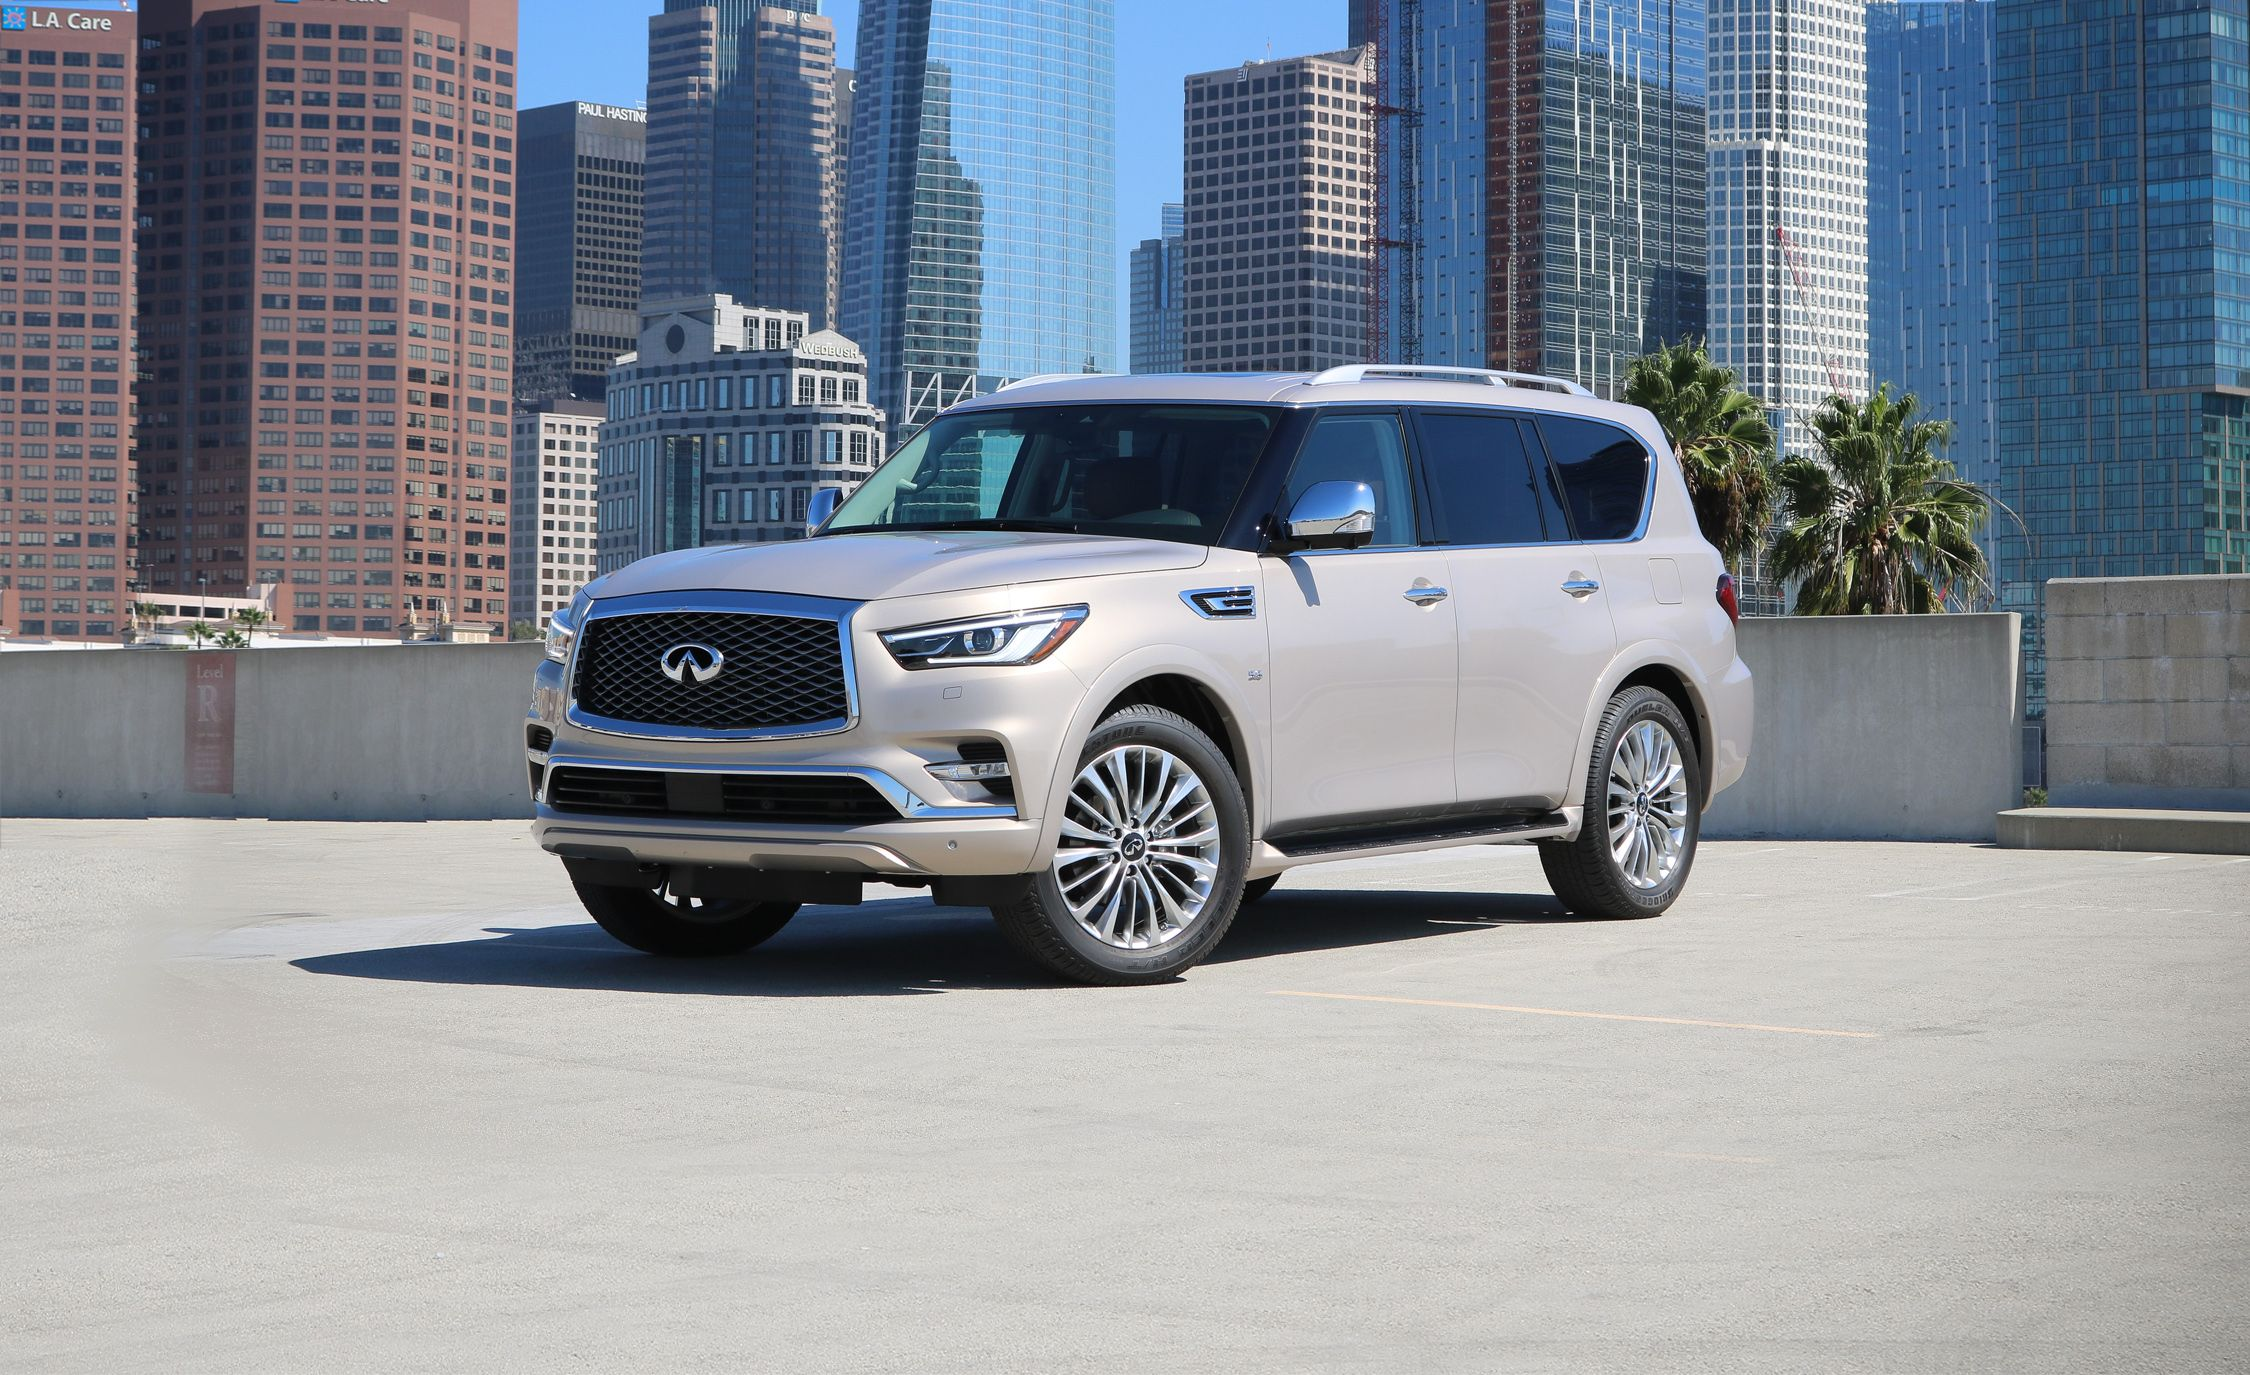 2018 Infiniti QX80 Revealed: Second Timeu0027s The Charm For This Giant SUV